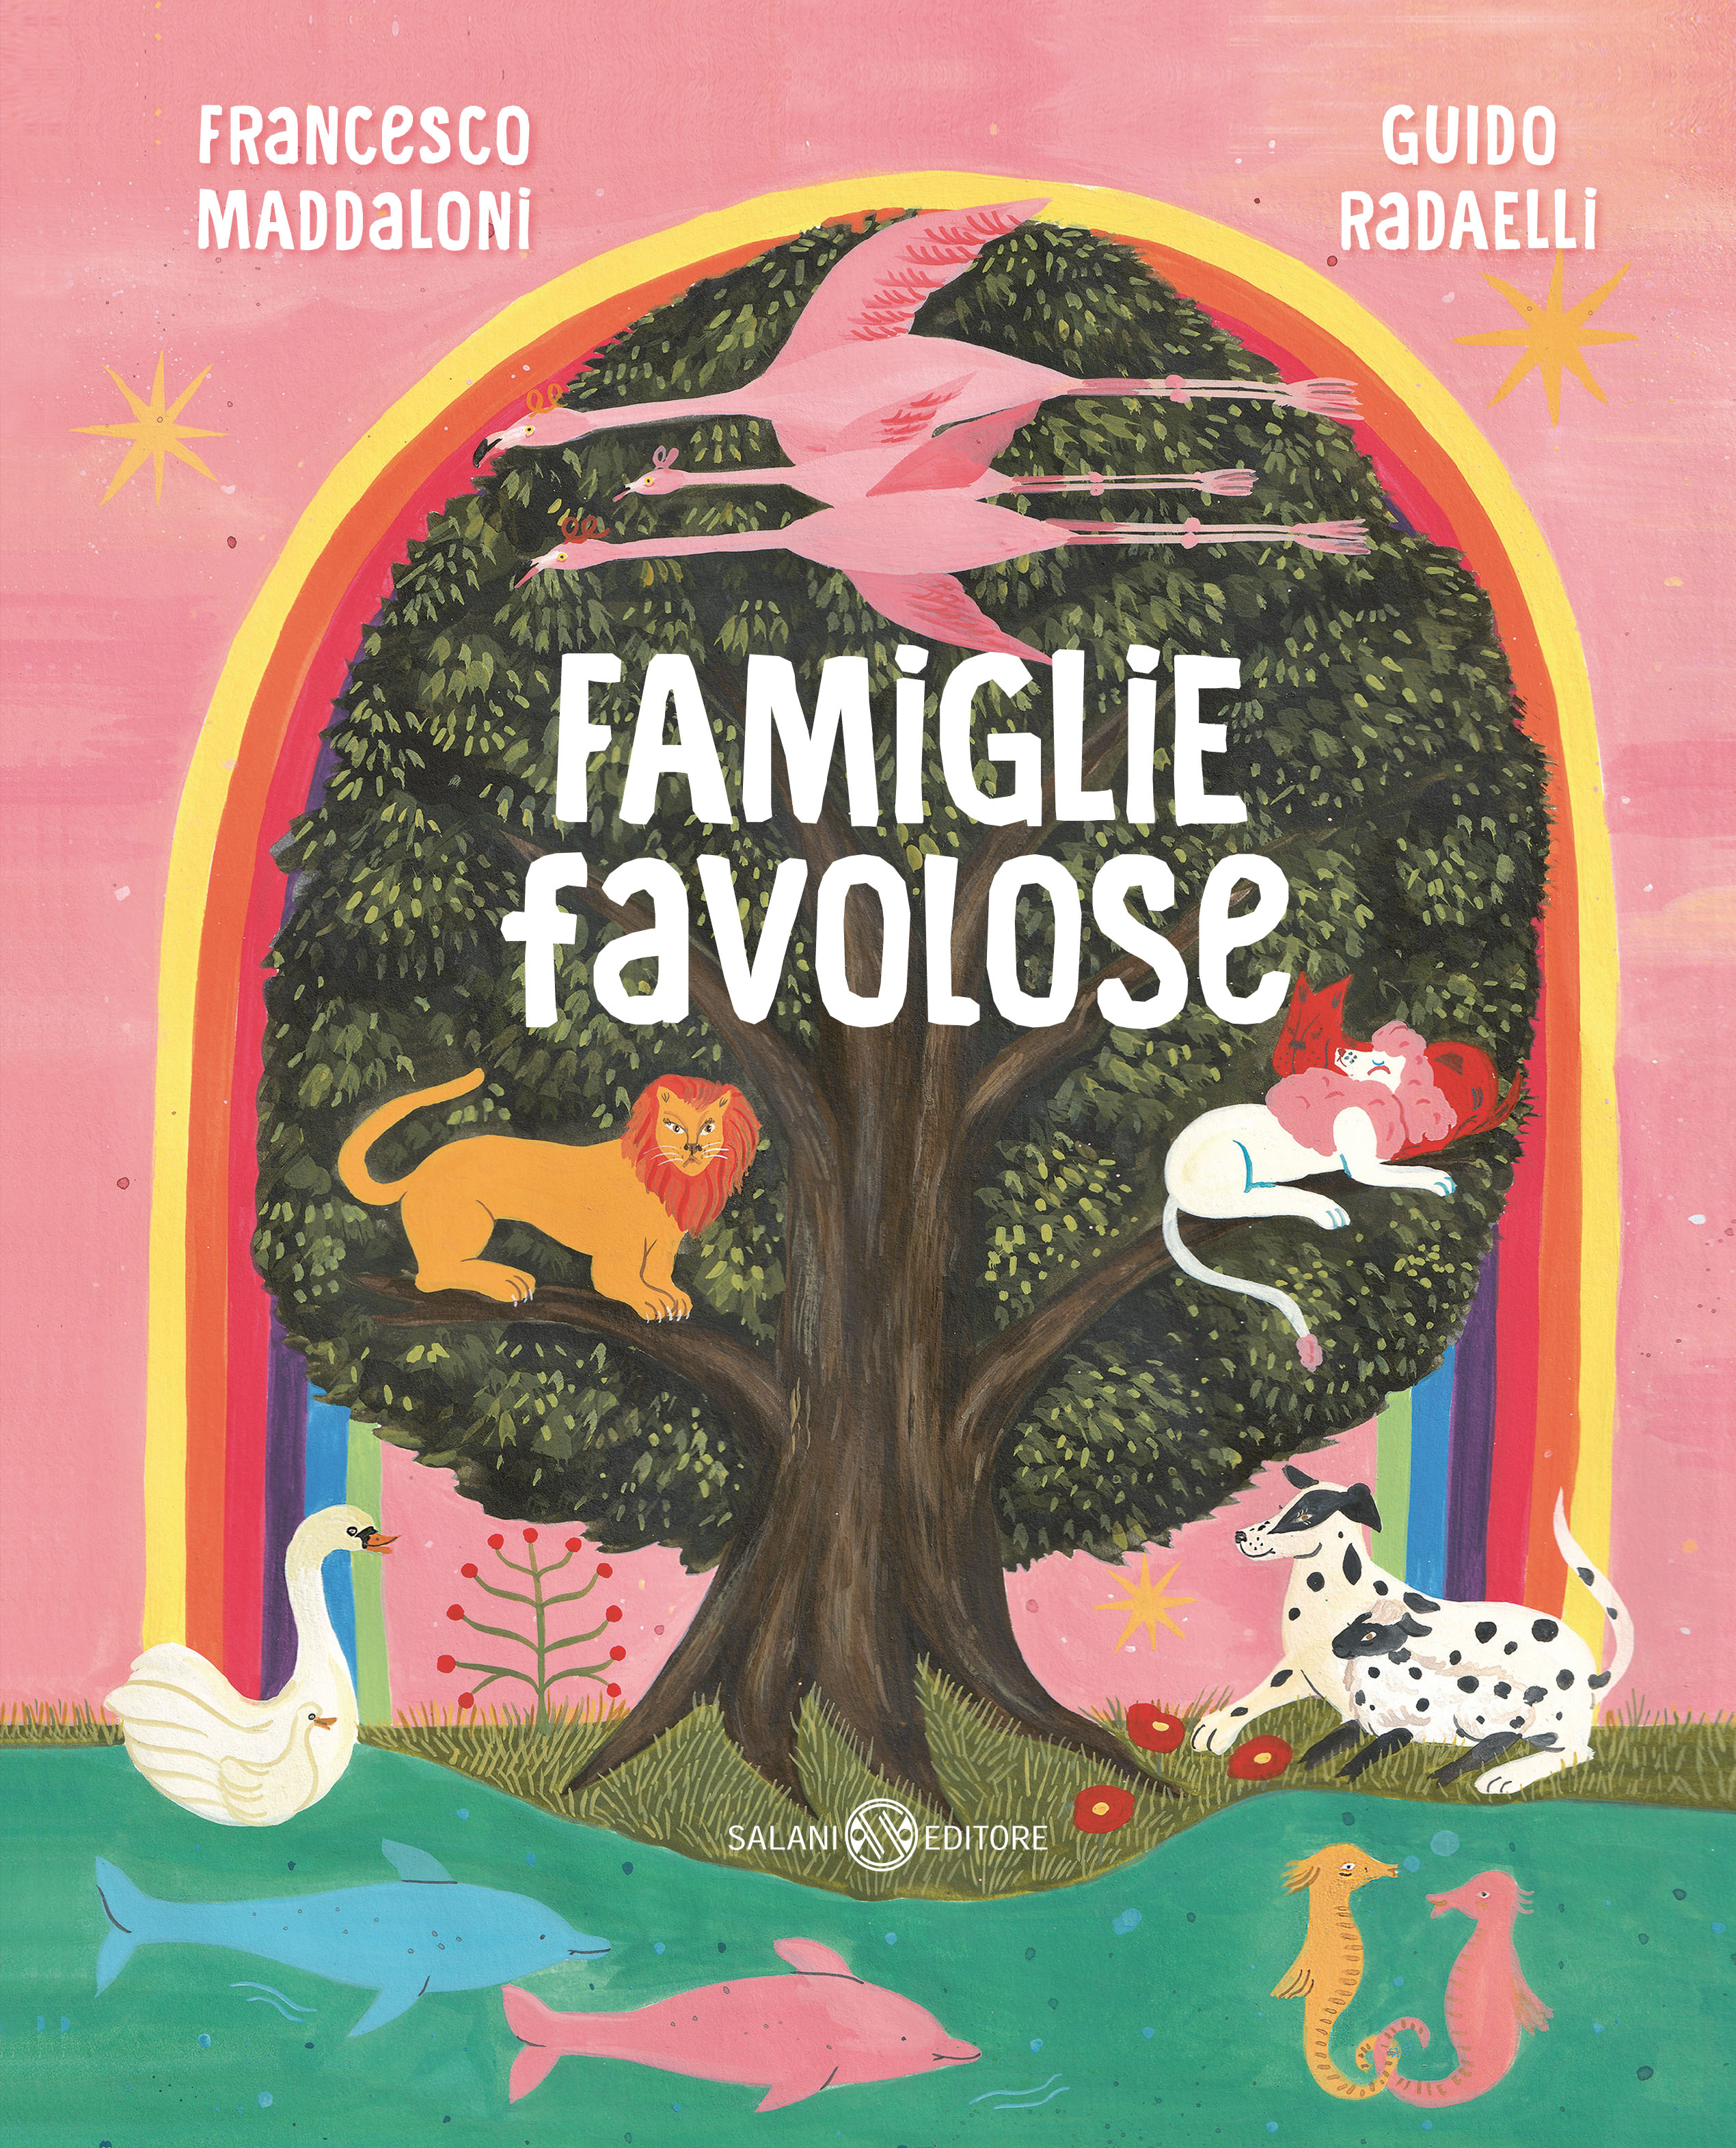 0523121_Famiglie favolose_Plancia@01.indd